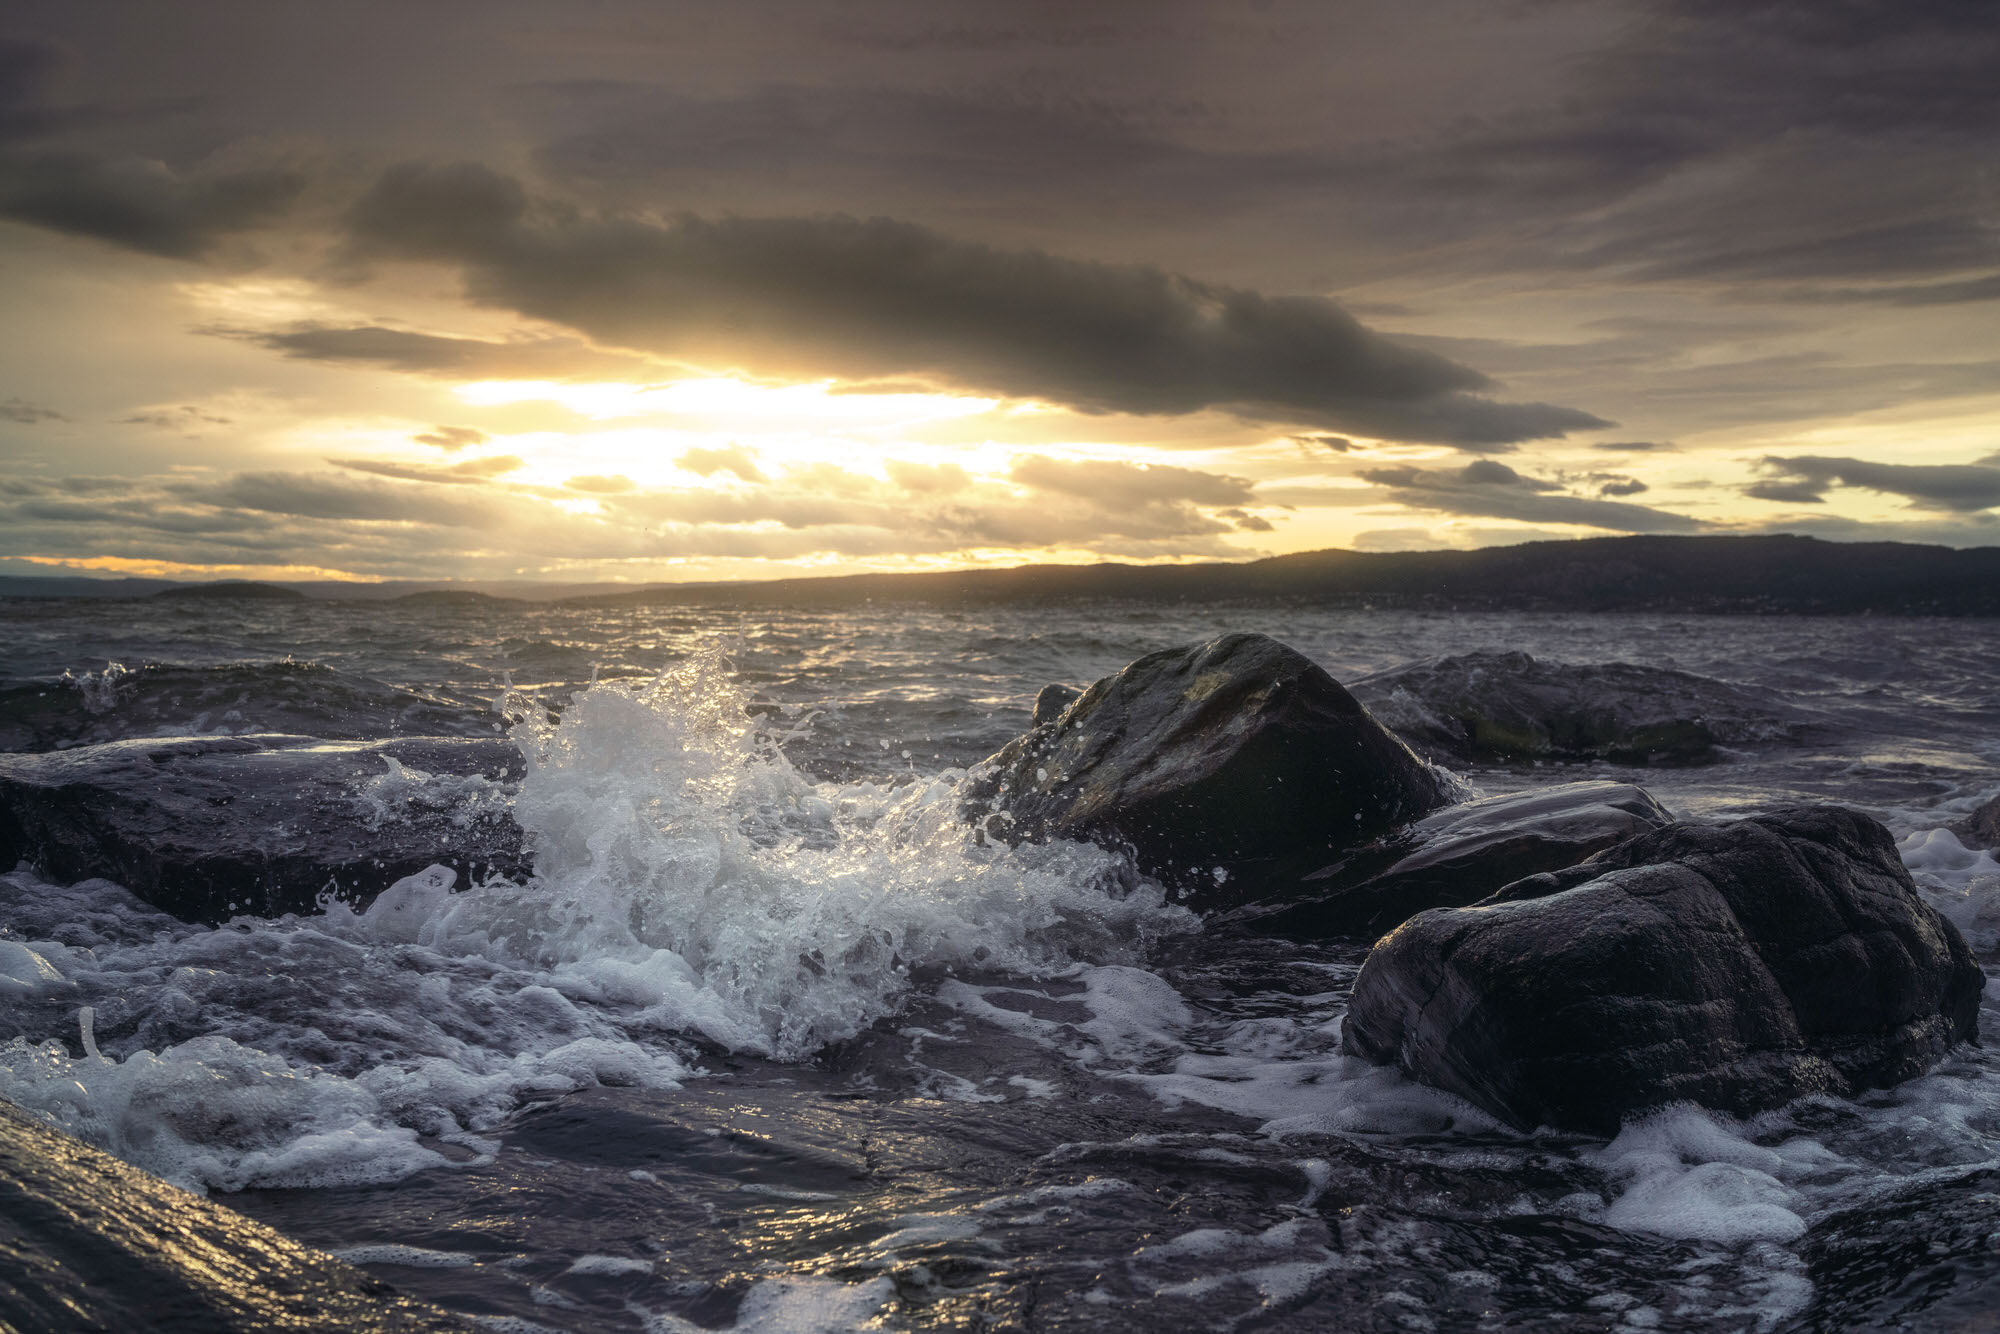 Waves crashing on the rocks of Son, Norway during sunset